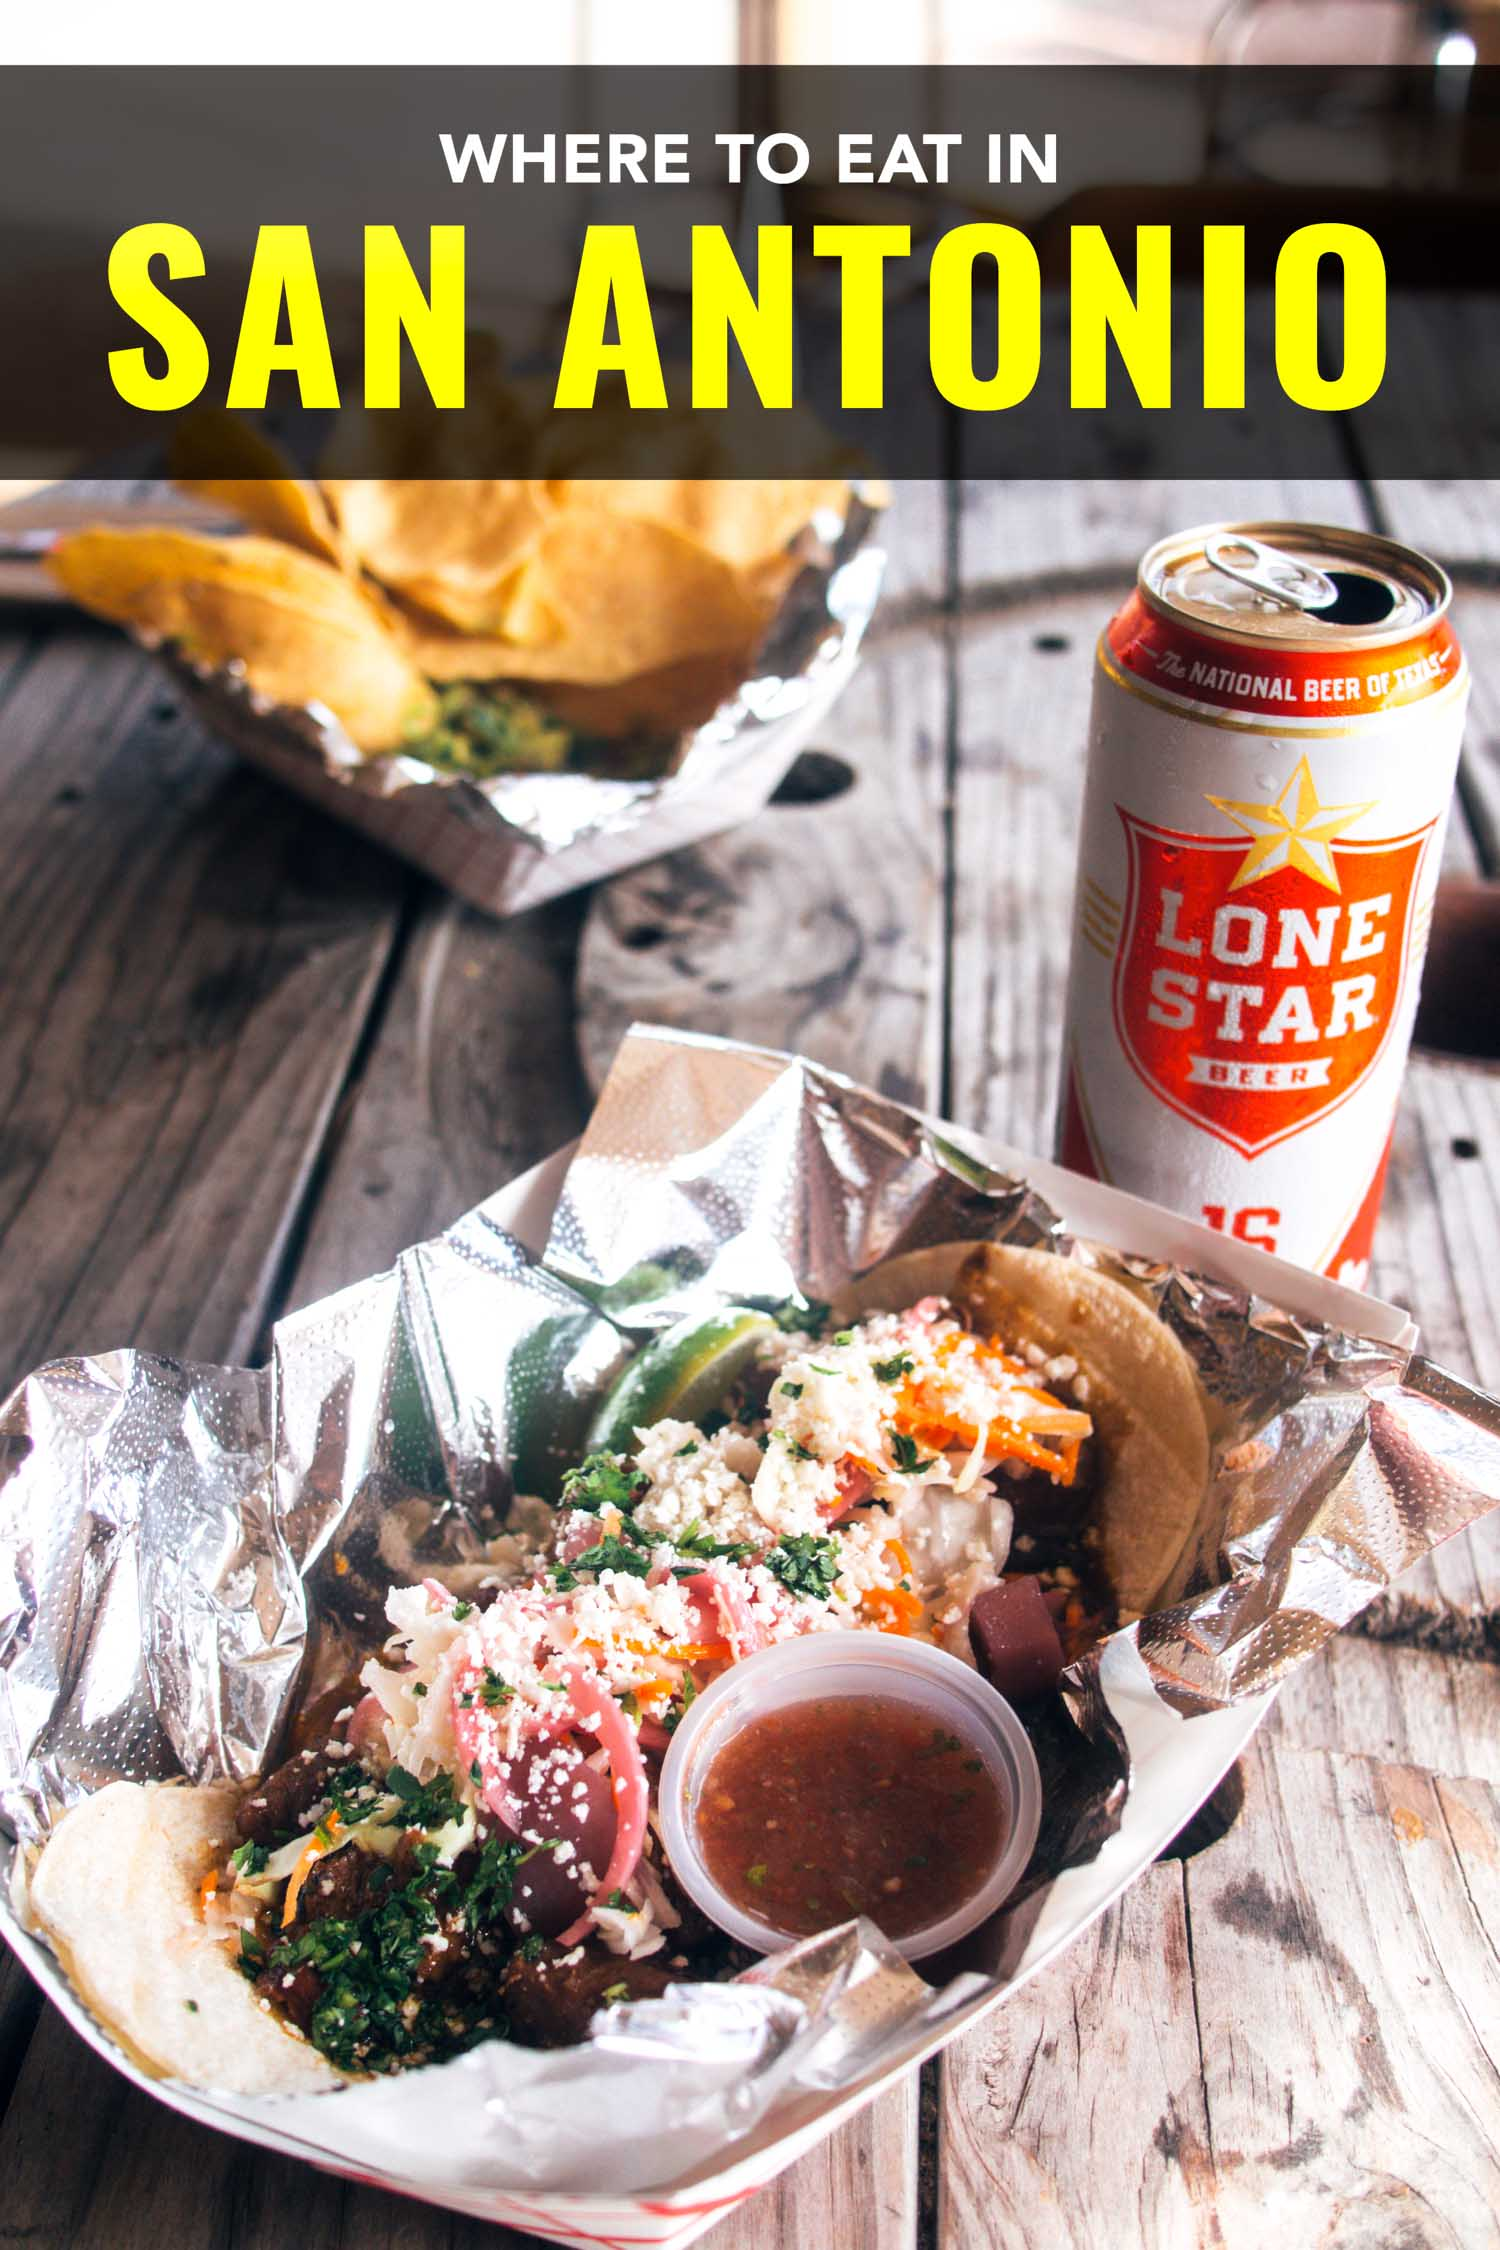 San Antonio tacos with Lone Star beer